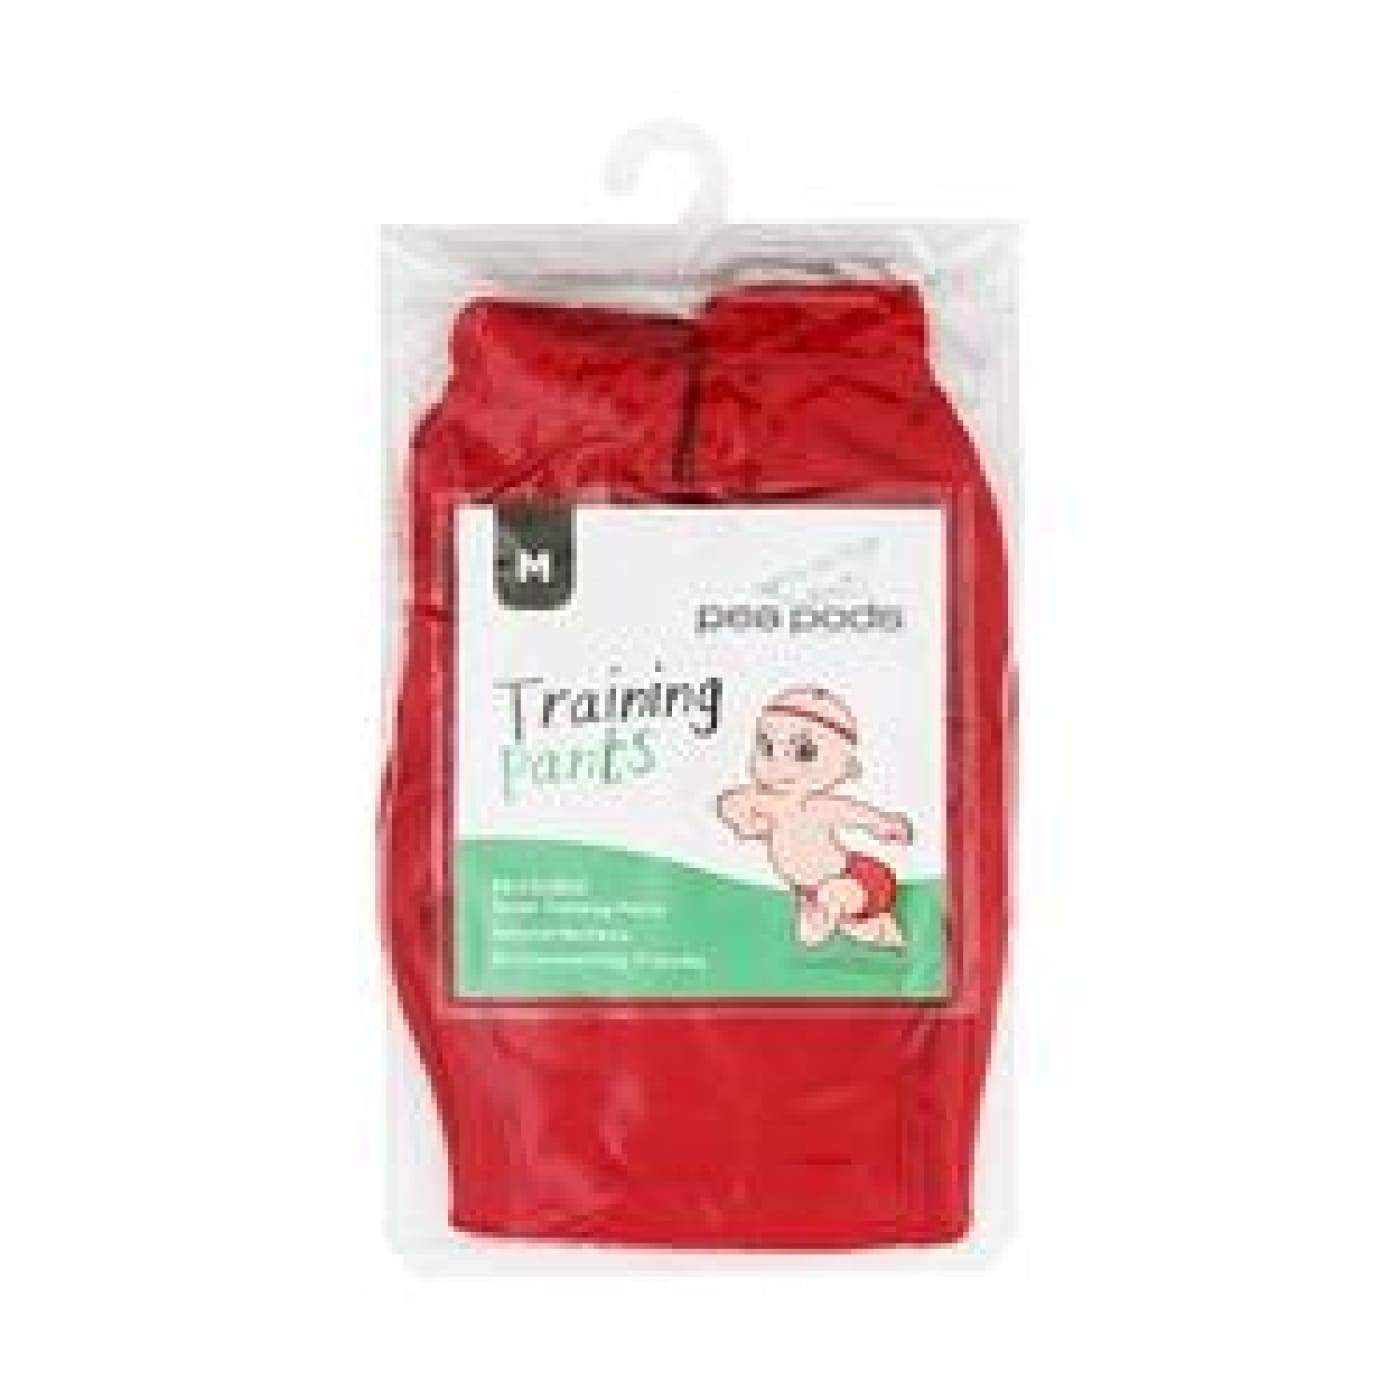 Pea Pods Training Pants Medium - Racing Red - BATHTIME & CHANGING - NAPPIES/WIPES/ACC ECO RANGE